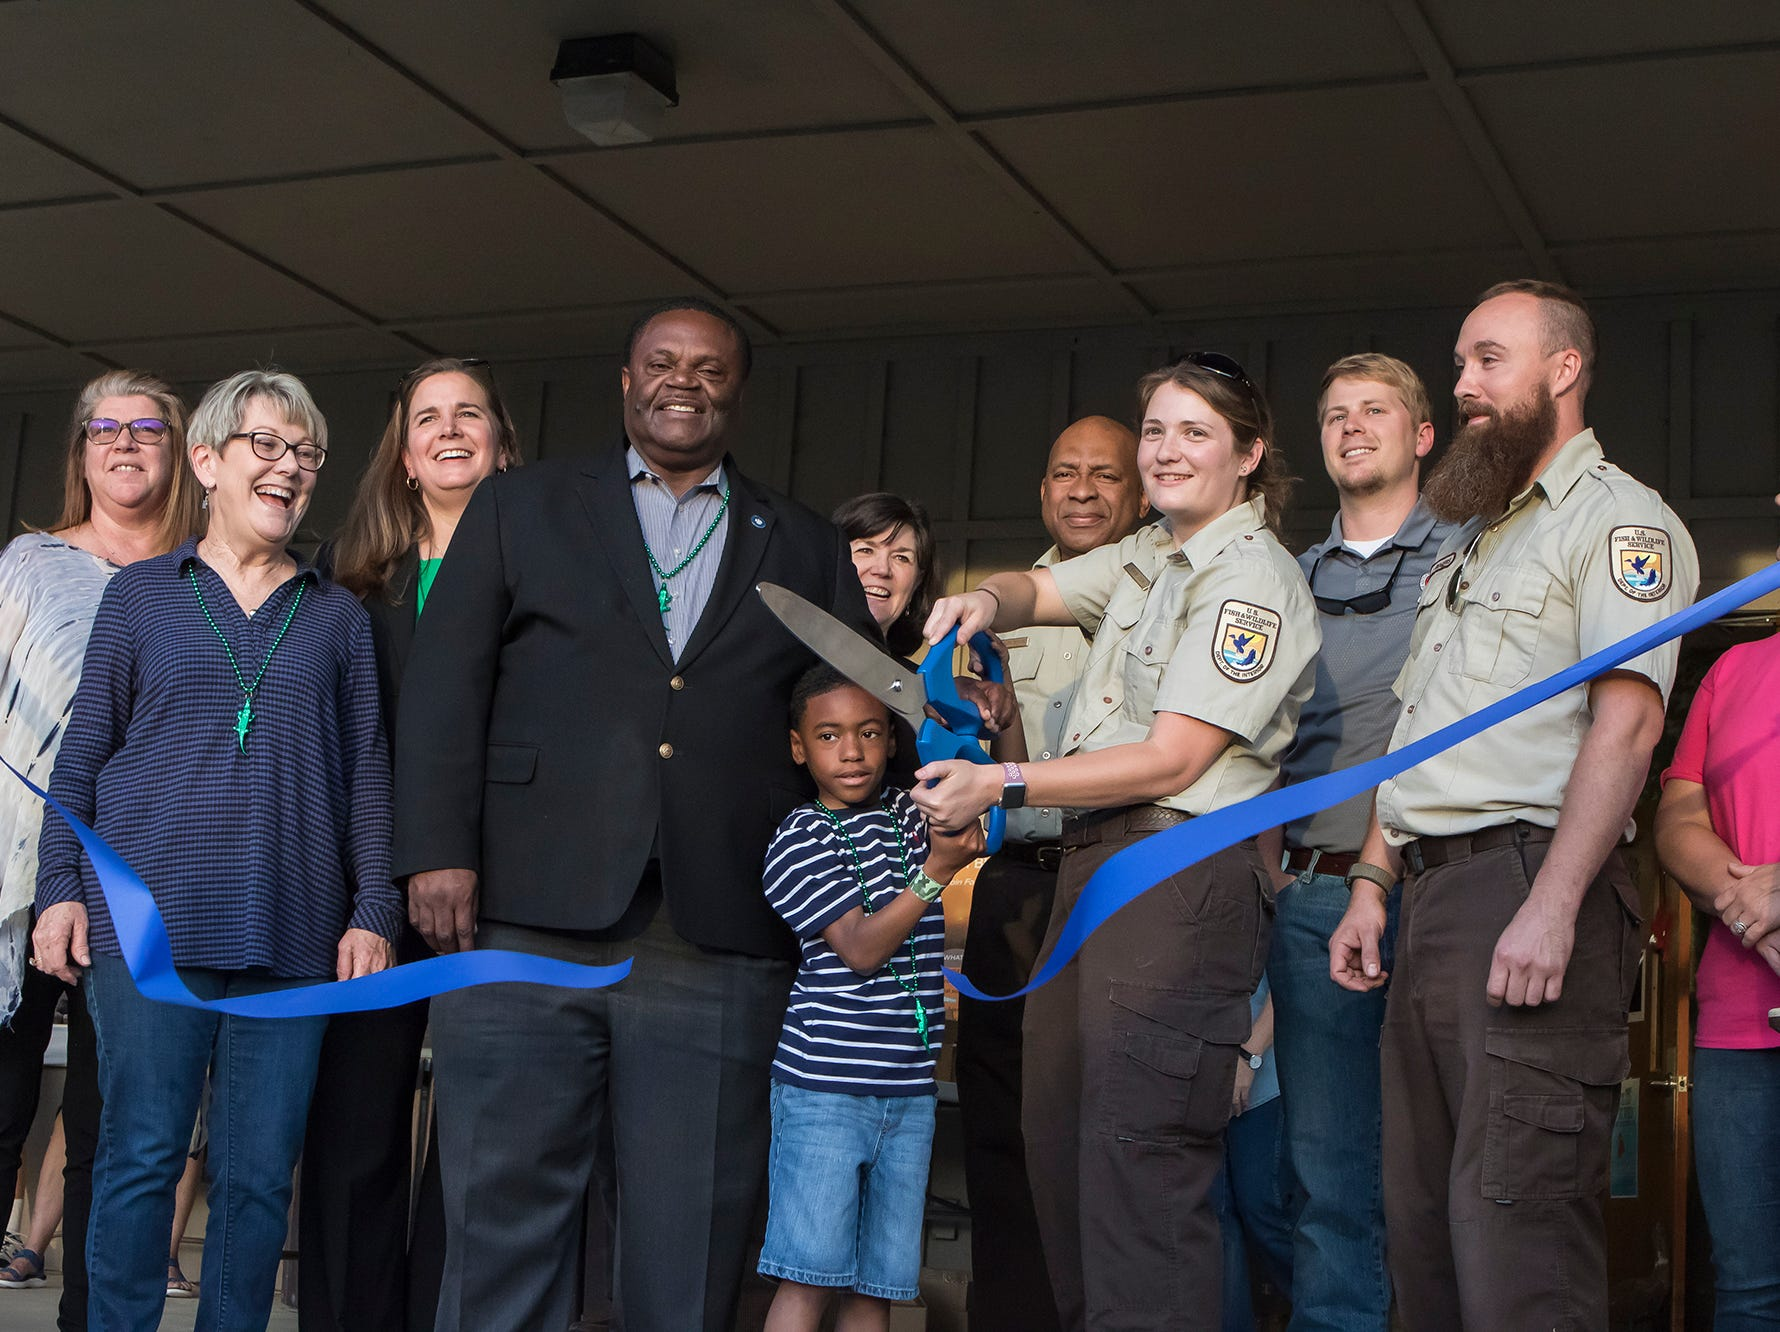 Black Bayou held a ribbon cutting and other festivities to celebrate the grand opening of the newly remodeled Learning Center on April 22 in Monroe, La.